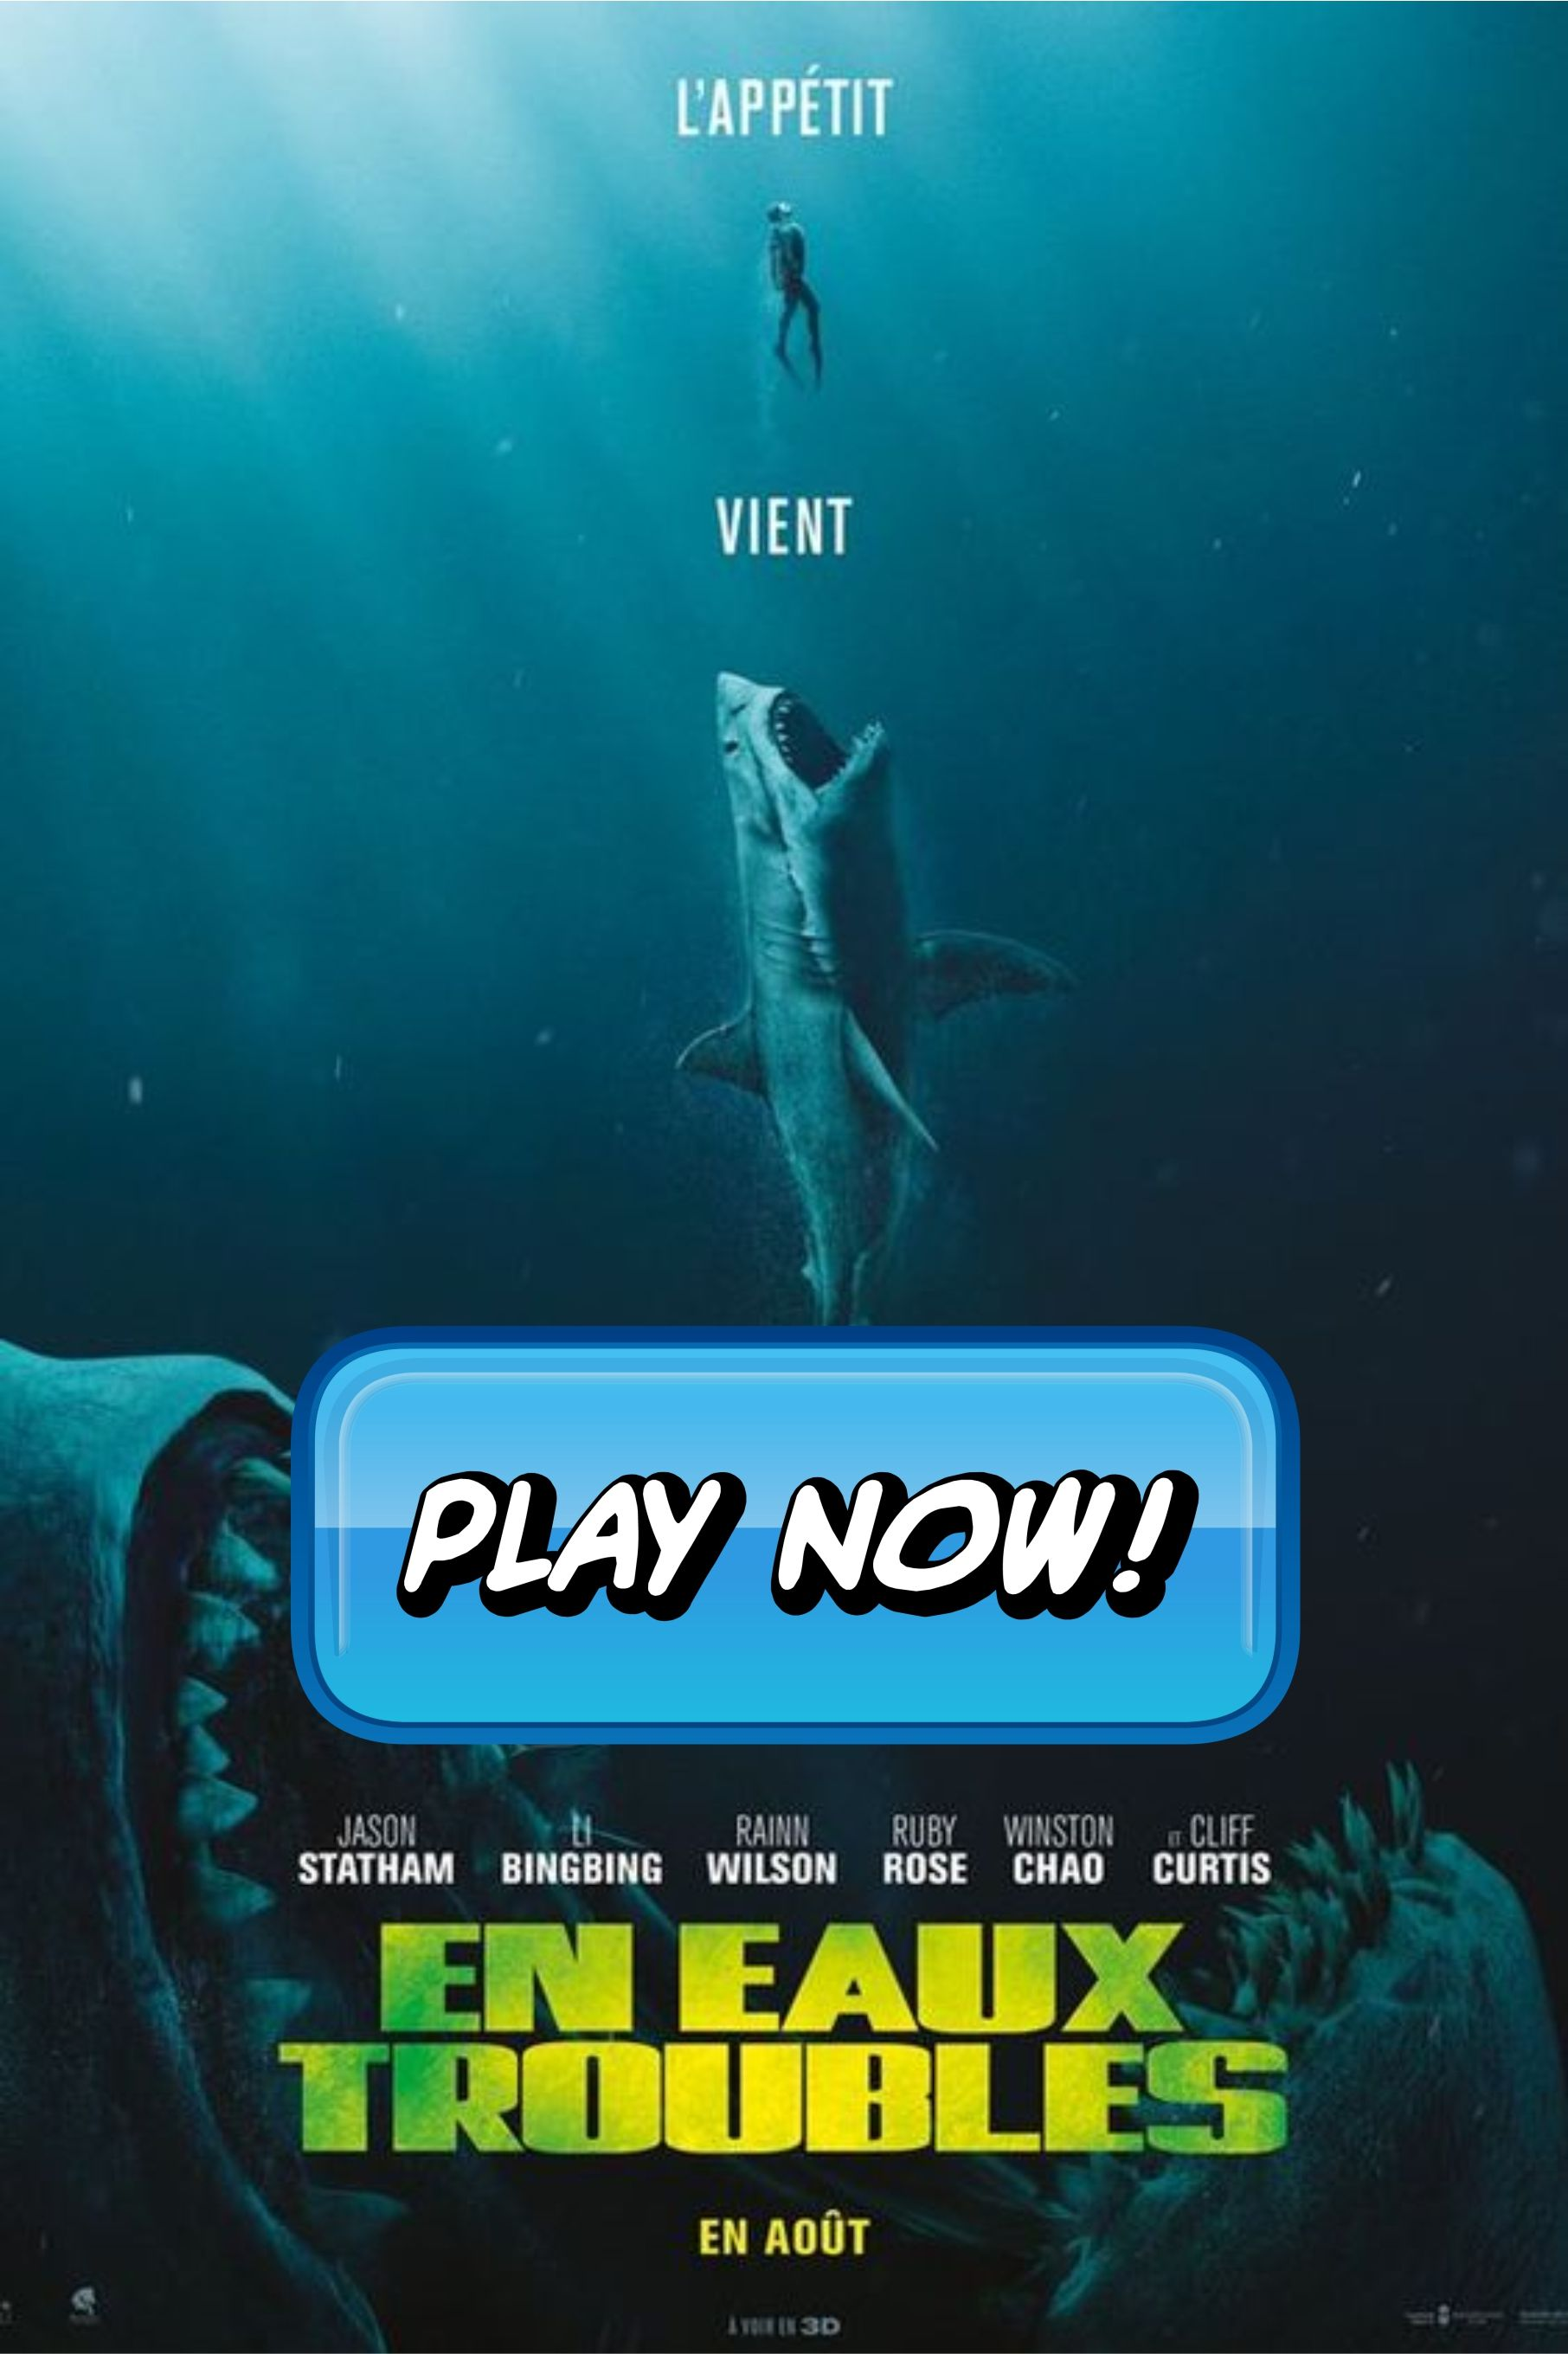 Regarder Film En Eaux Troubles Streaming Vf 2018 Complet En Entier Full Movies Marianas Trench Movies